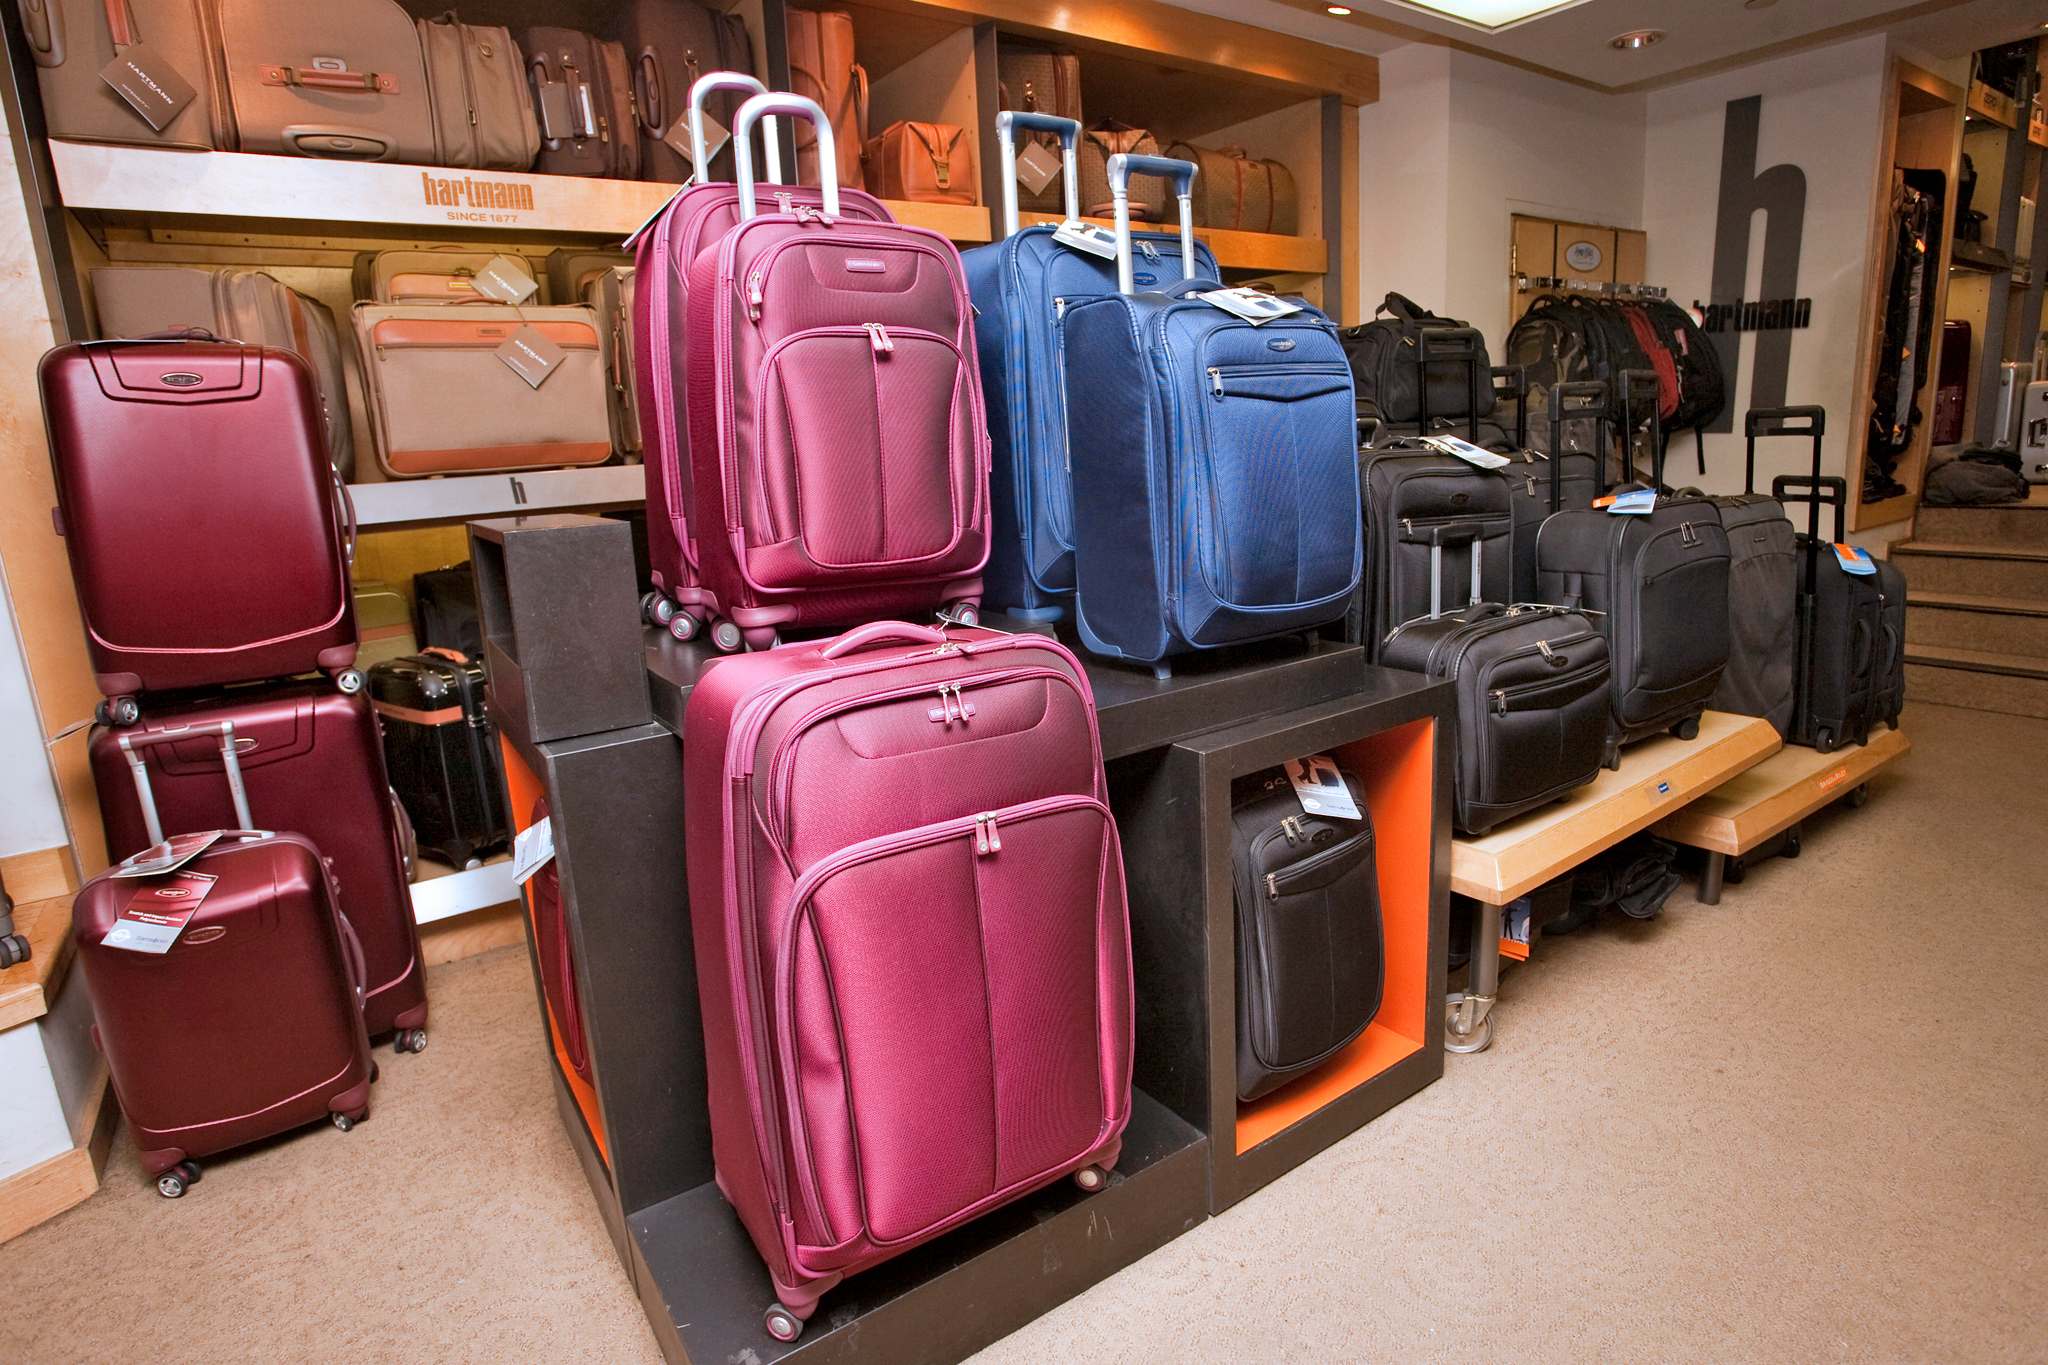 Bag Shops Best Luggage Stores In Nyc For Suitcases And Travel Accessories